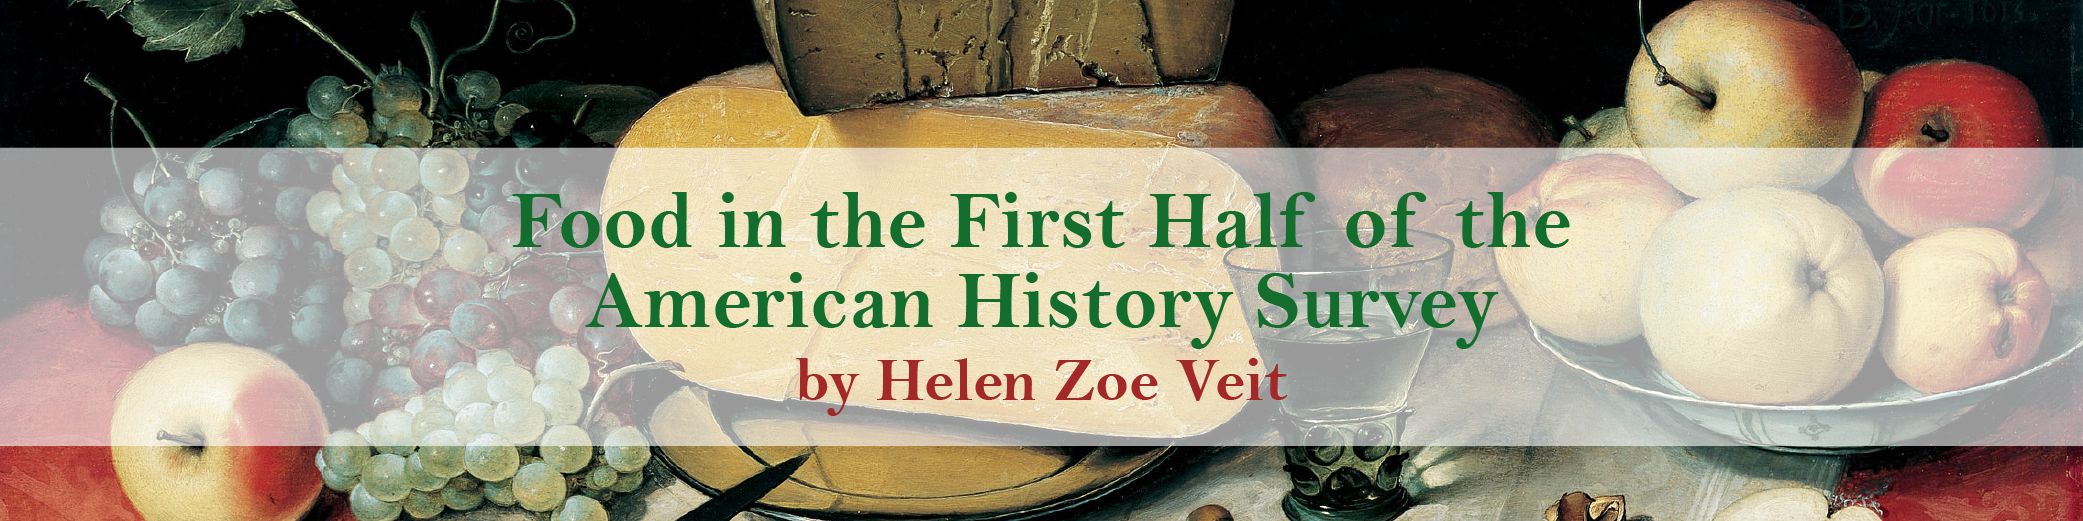 "teaching essay food in the first half of the american history  ""food in the first half of the american history survey"" is the first in a series of commissioned articles for the book channel that aim to help teachers and"